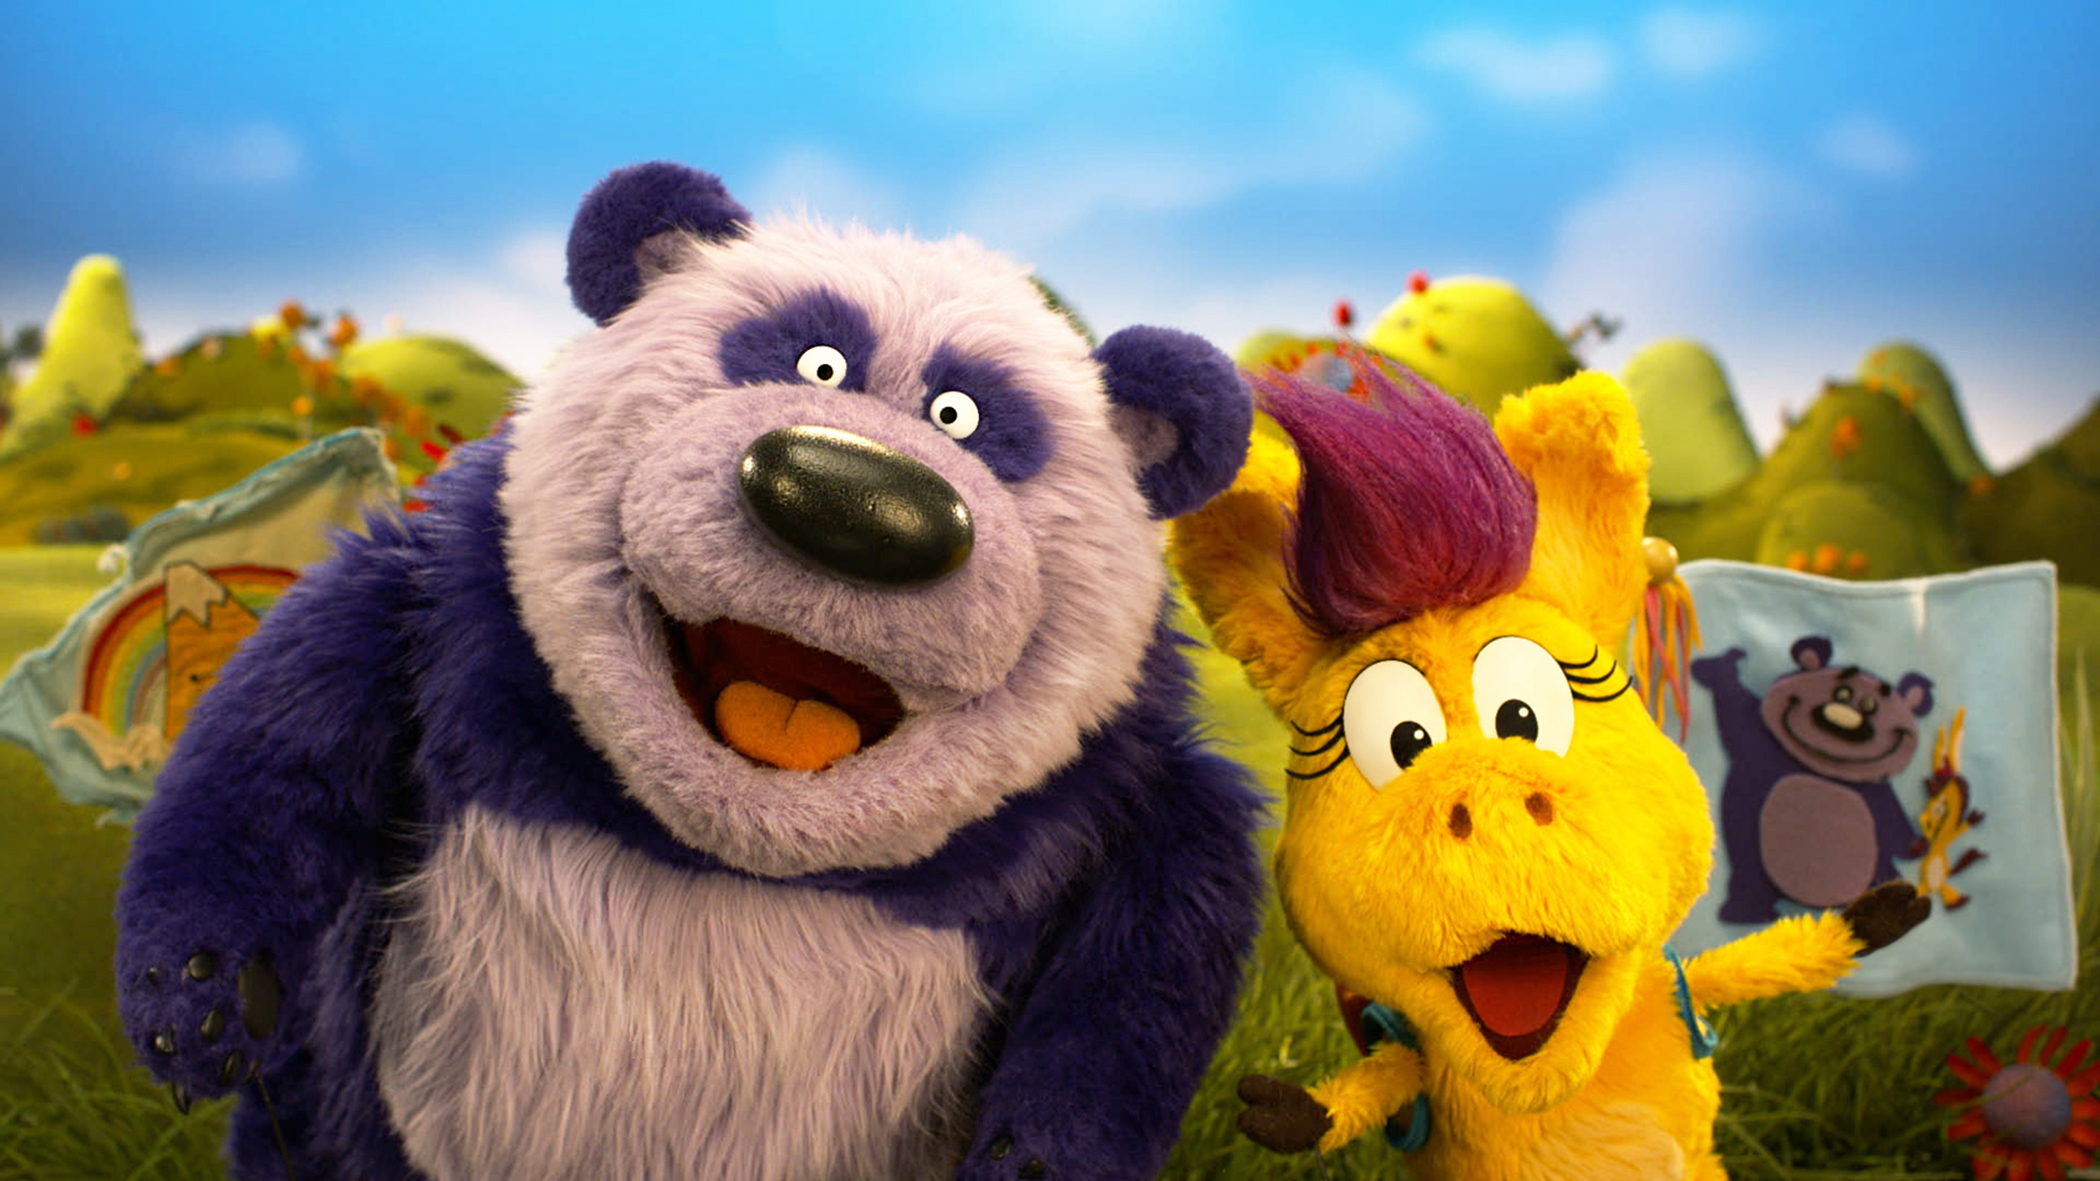 The Purple Panda and Donkey Hodie puppets from the series Donkey hodie.